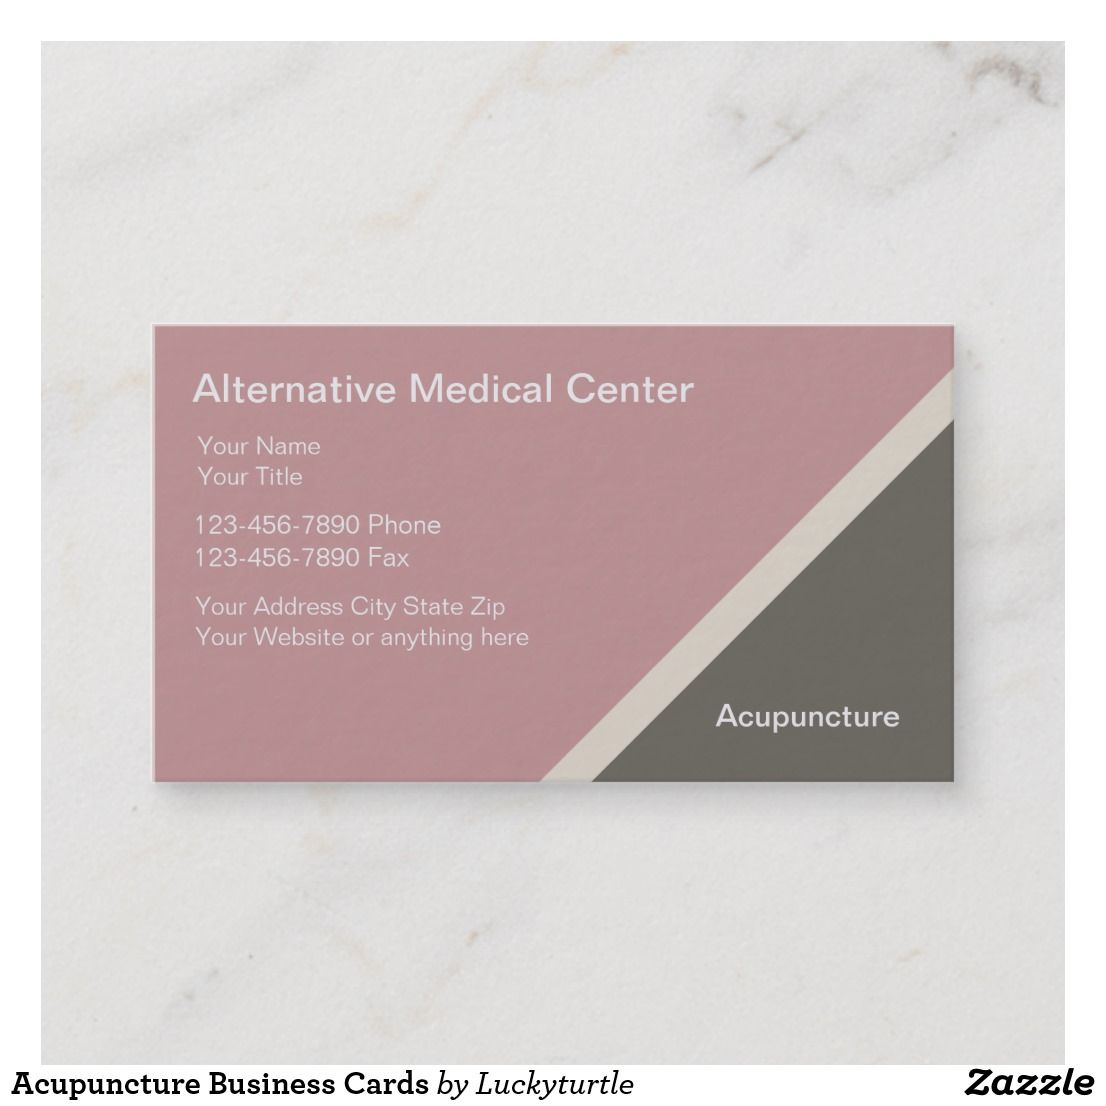 Acupuncture Business Cards | Acupuncture and Business cards